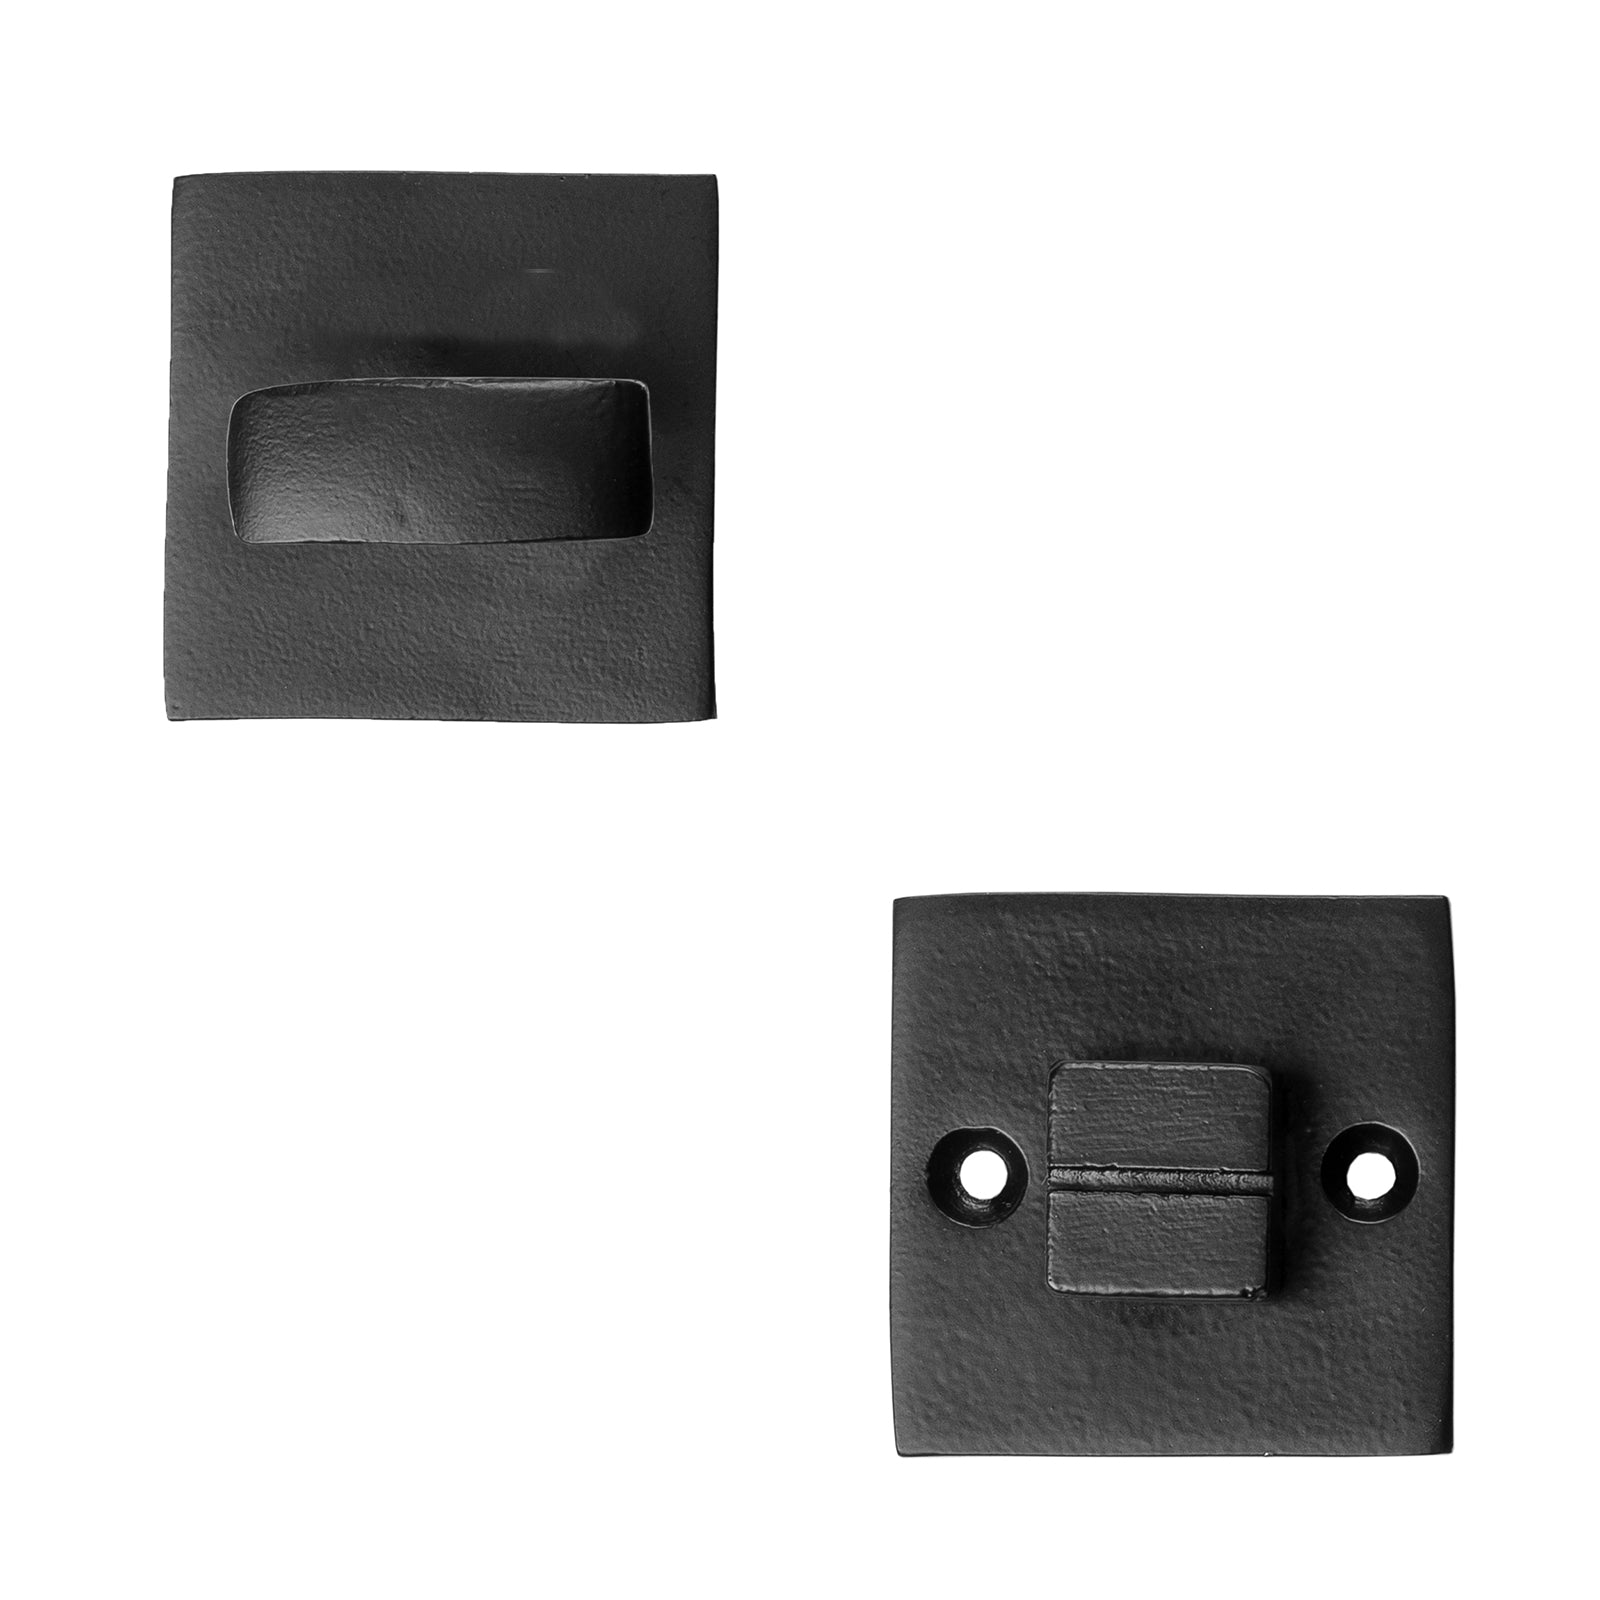 Square Black Cast Iron Bathroom Turn & Release